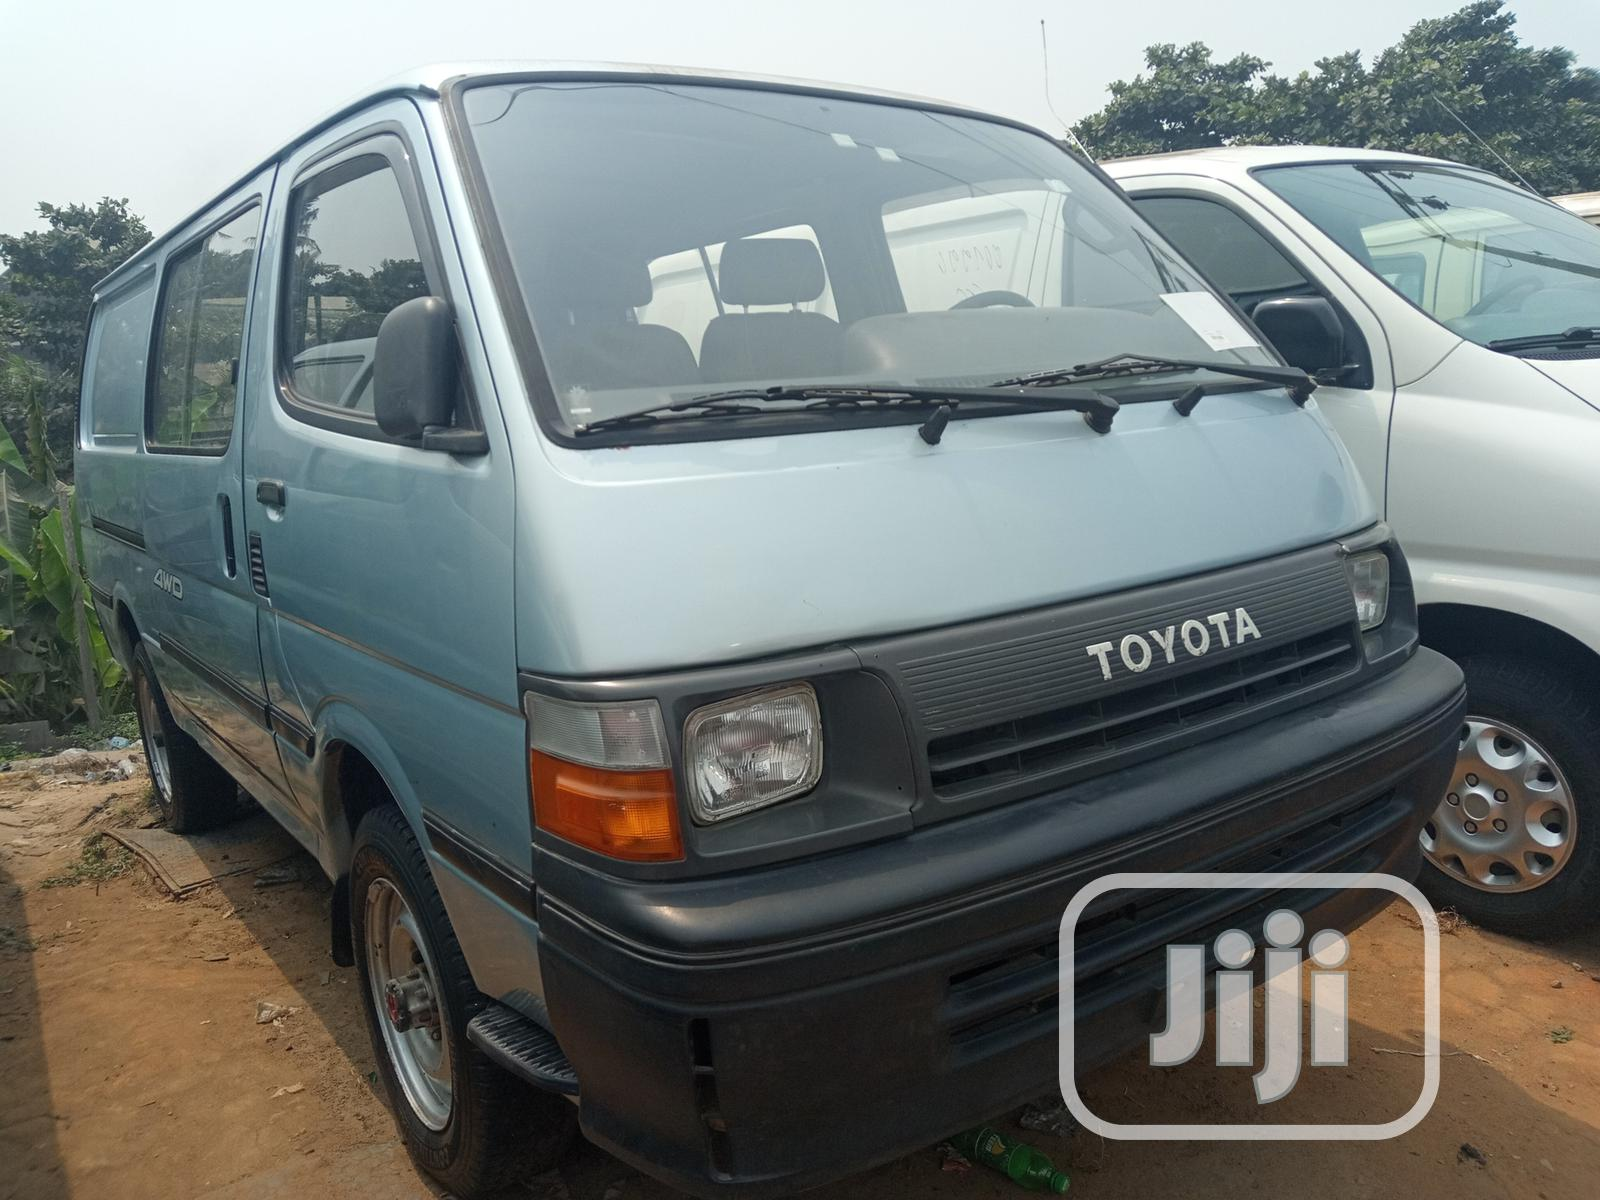 Archive: Toyota Hiace 1999 Model Blue Color, Container Body Long Chasis